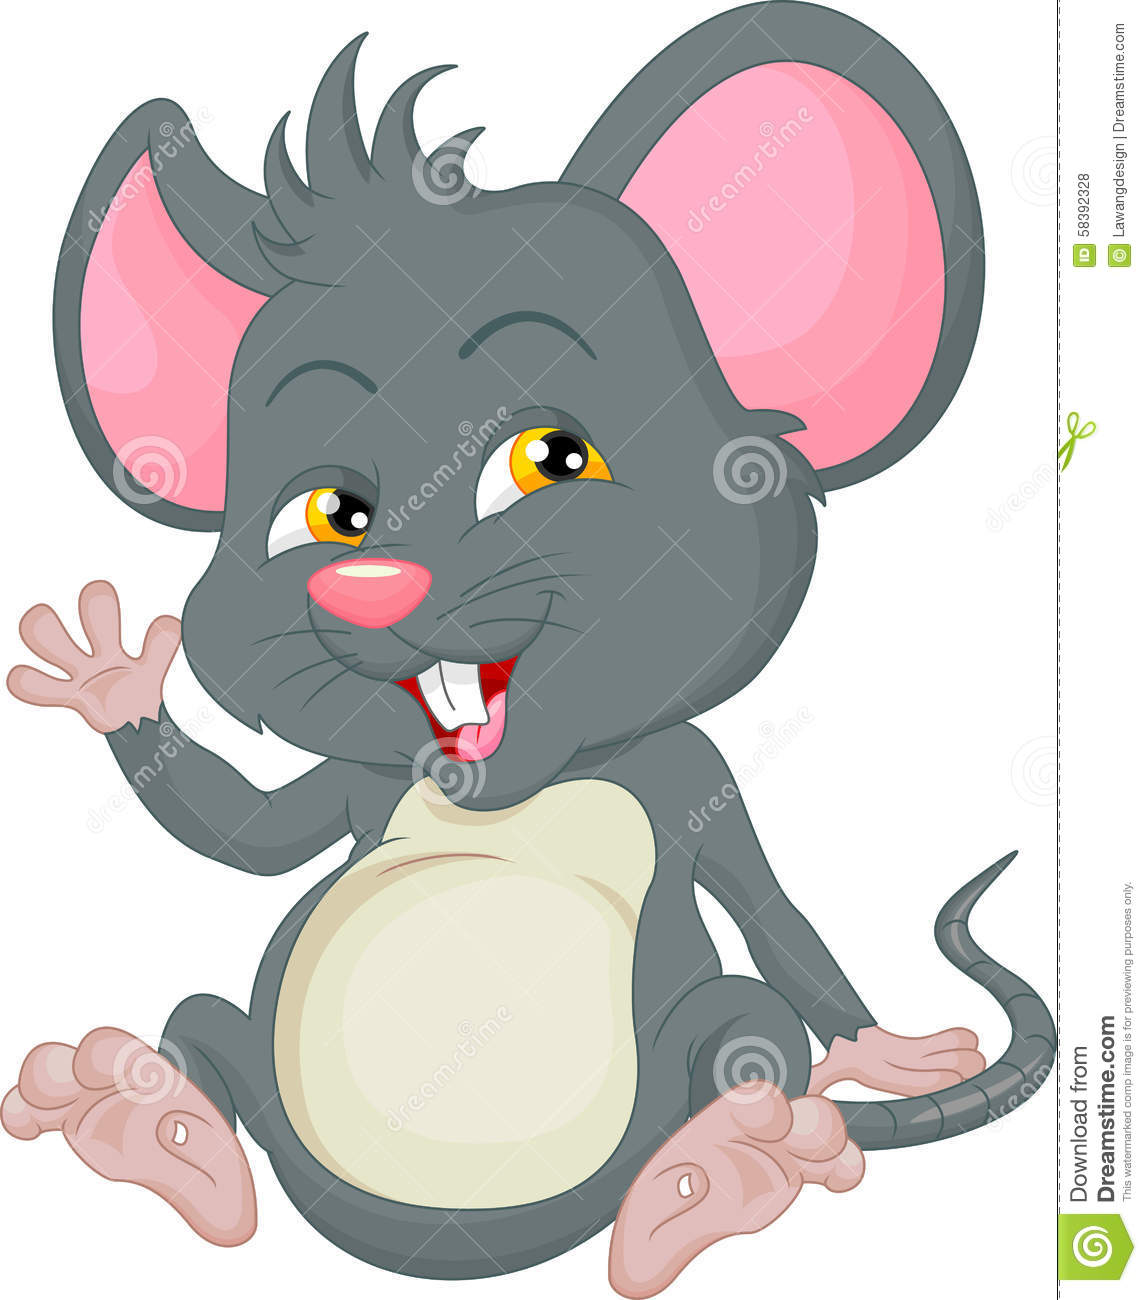 Cute Mouse Cartoon Waving Stock Vector - Image: 58392328